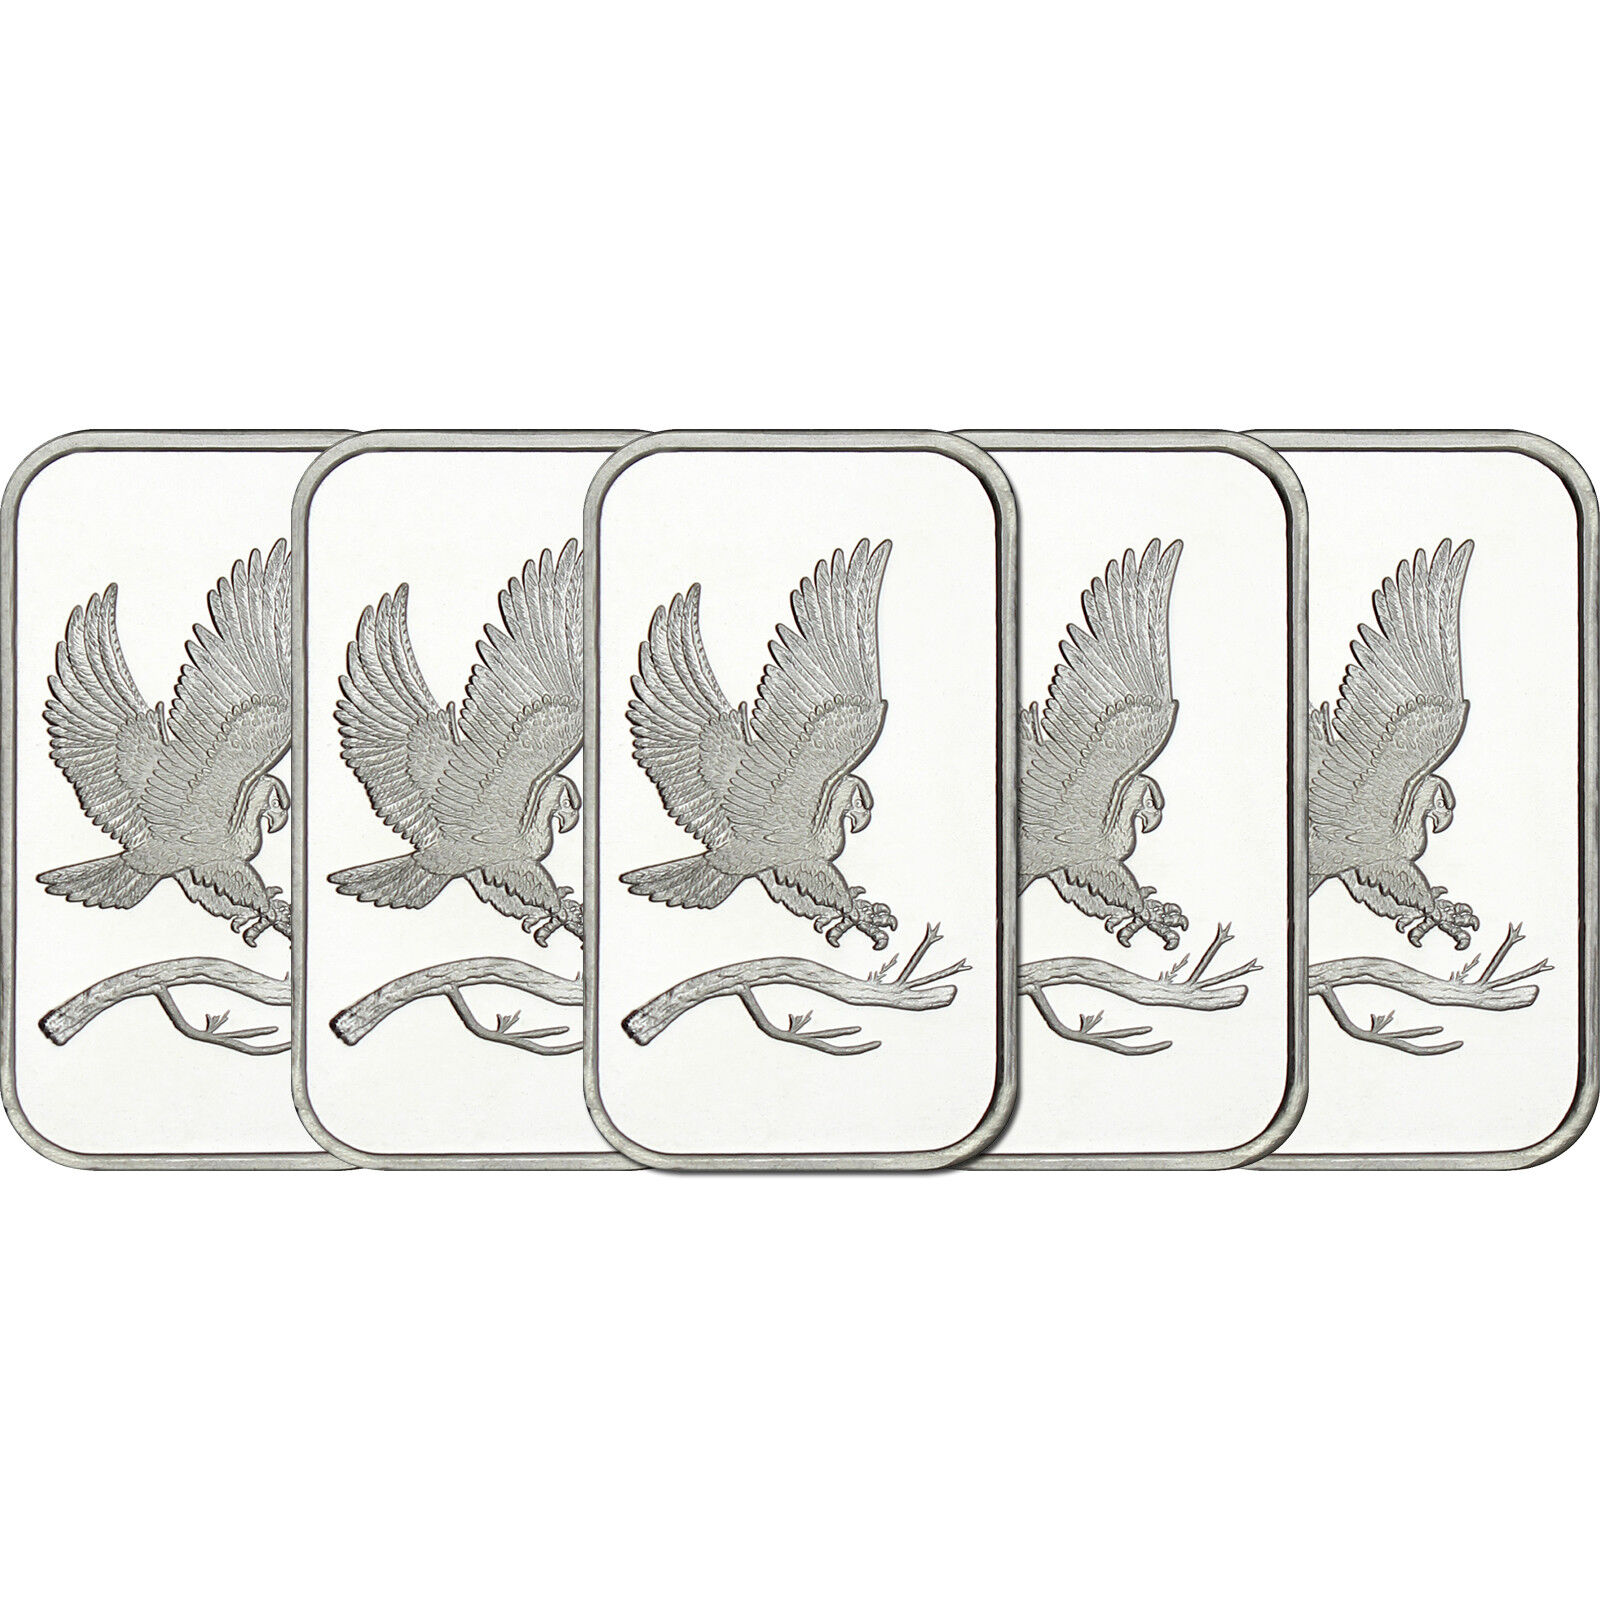 Trademark Bald Eagle 1oz .999 Fine Silver Bars by SilverTowne LOT OF 5